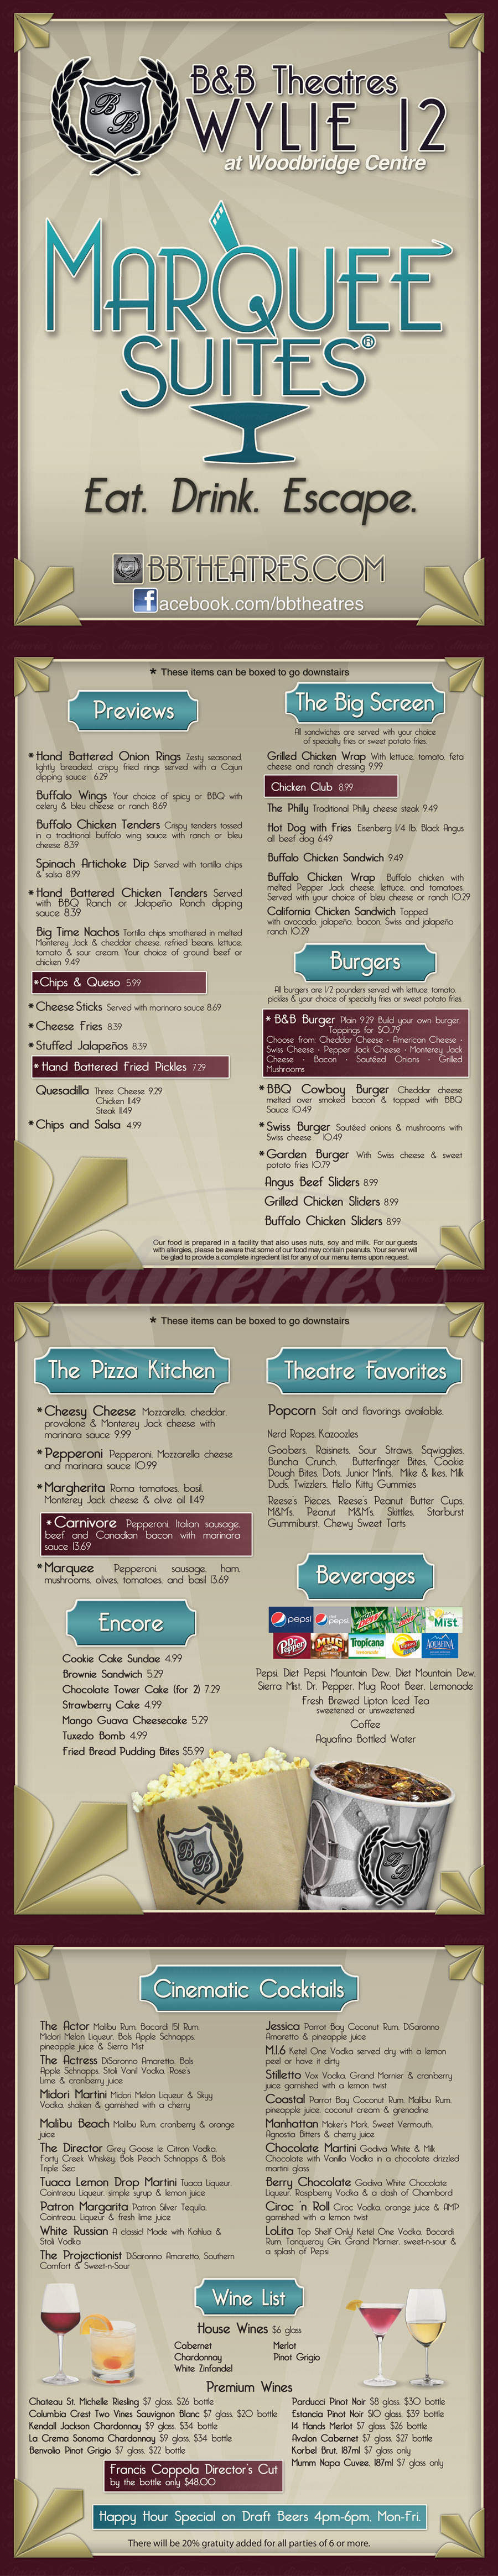 menu for B&B Theatres Wylie 12